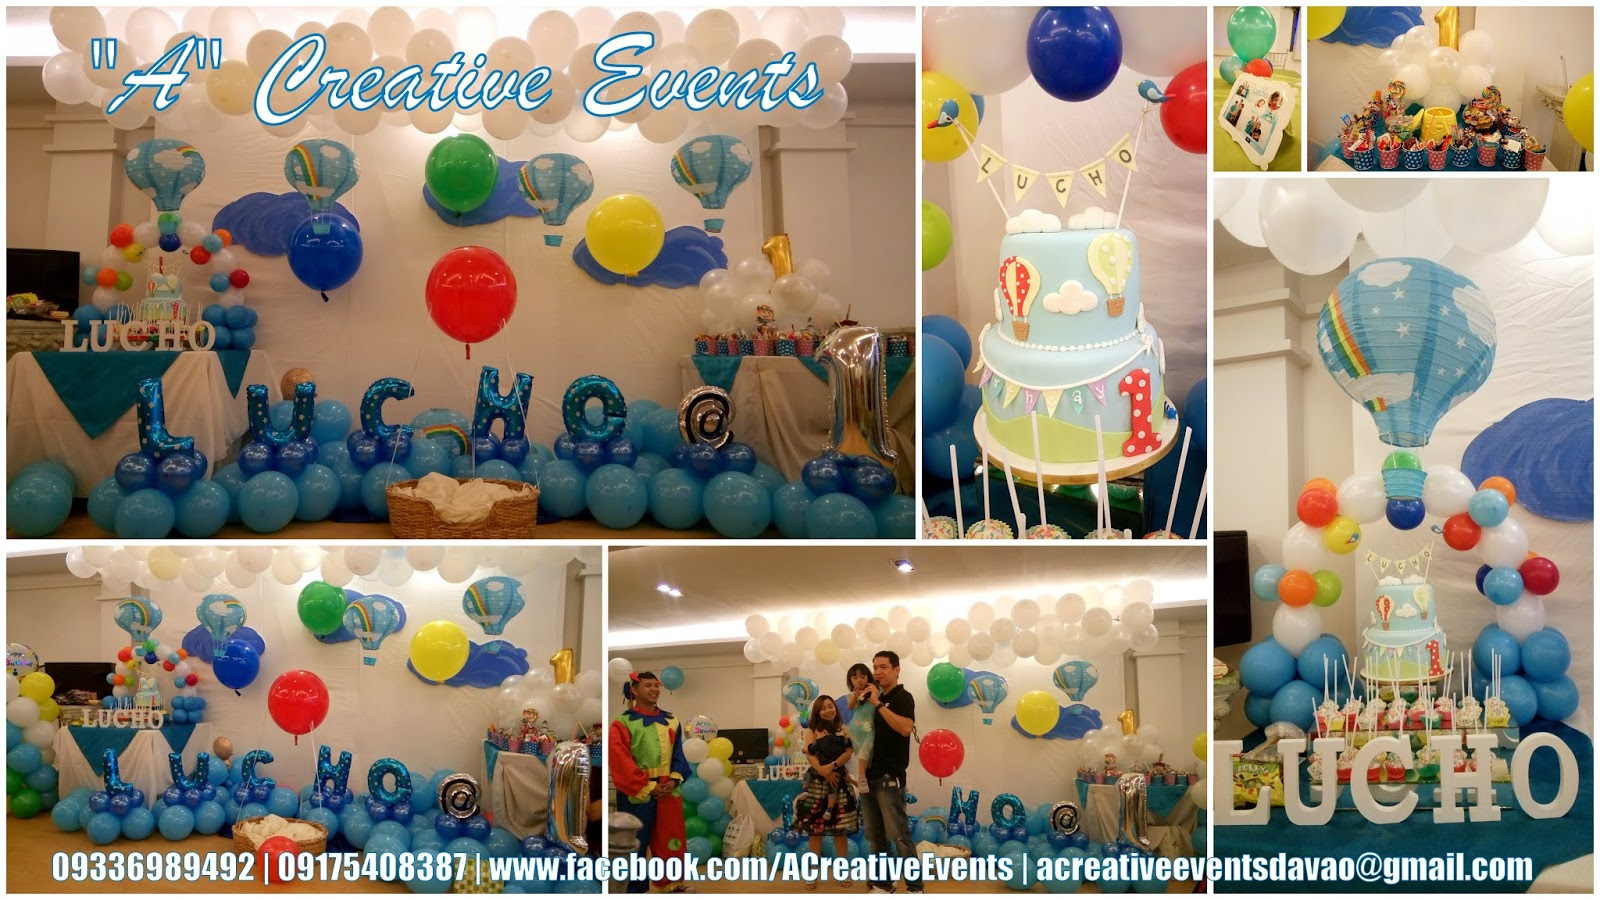 A Creative Events Formerly Athena Miel S Balloons Bubbles And Party Needs Lucho S Hot Air Balloon Themed Party